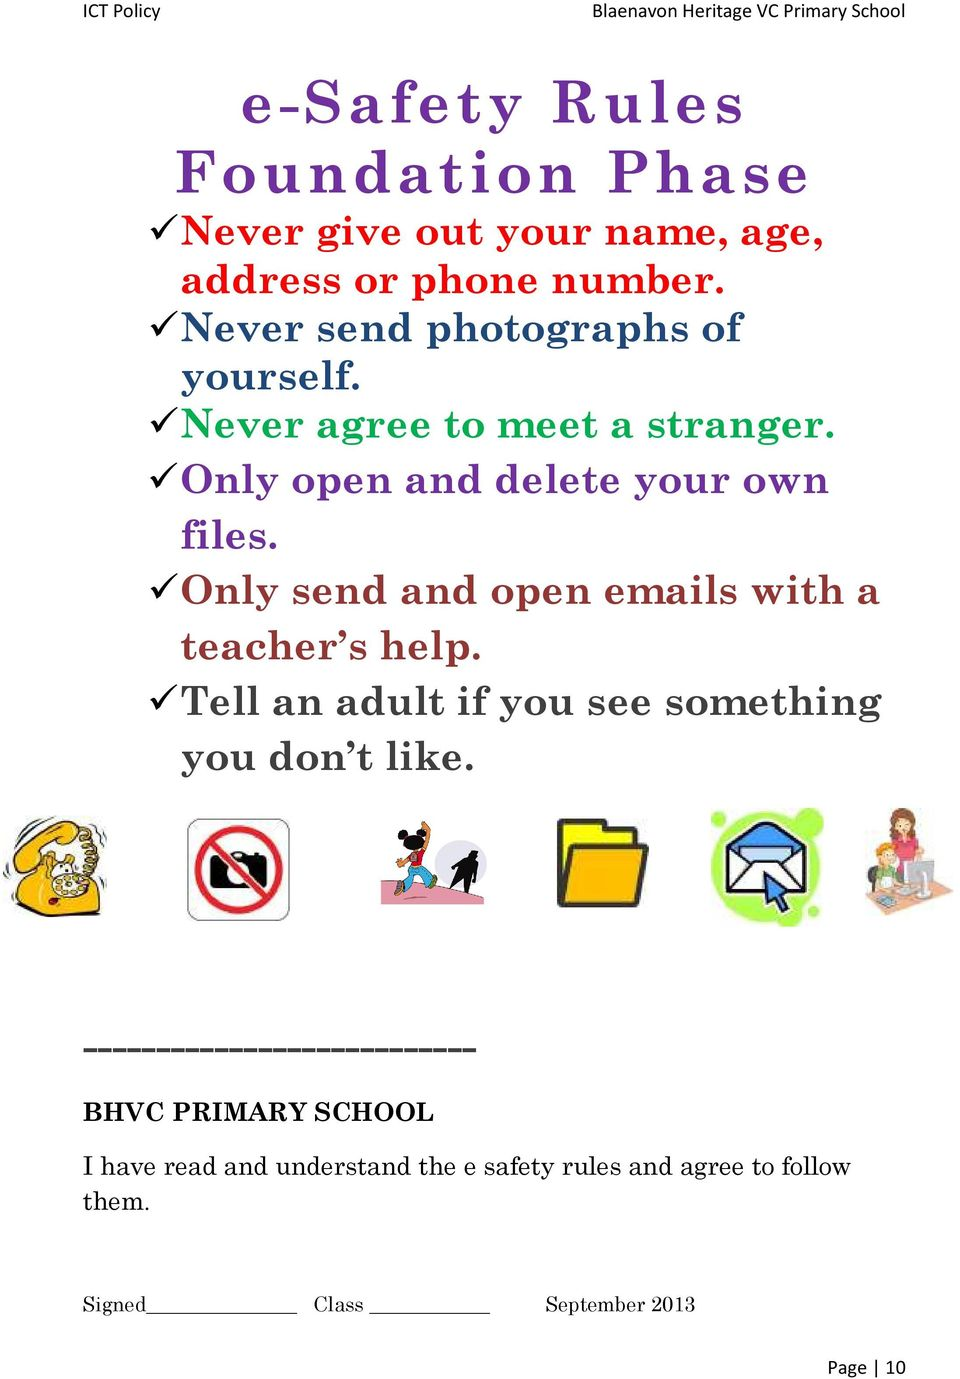 Only send and open emails with a teacher s help. Tell an adult if you see something you don t like.